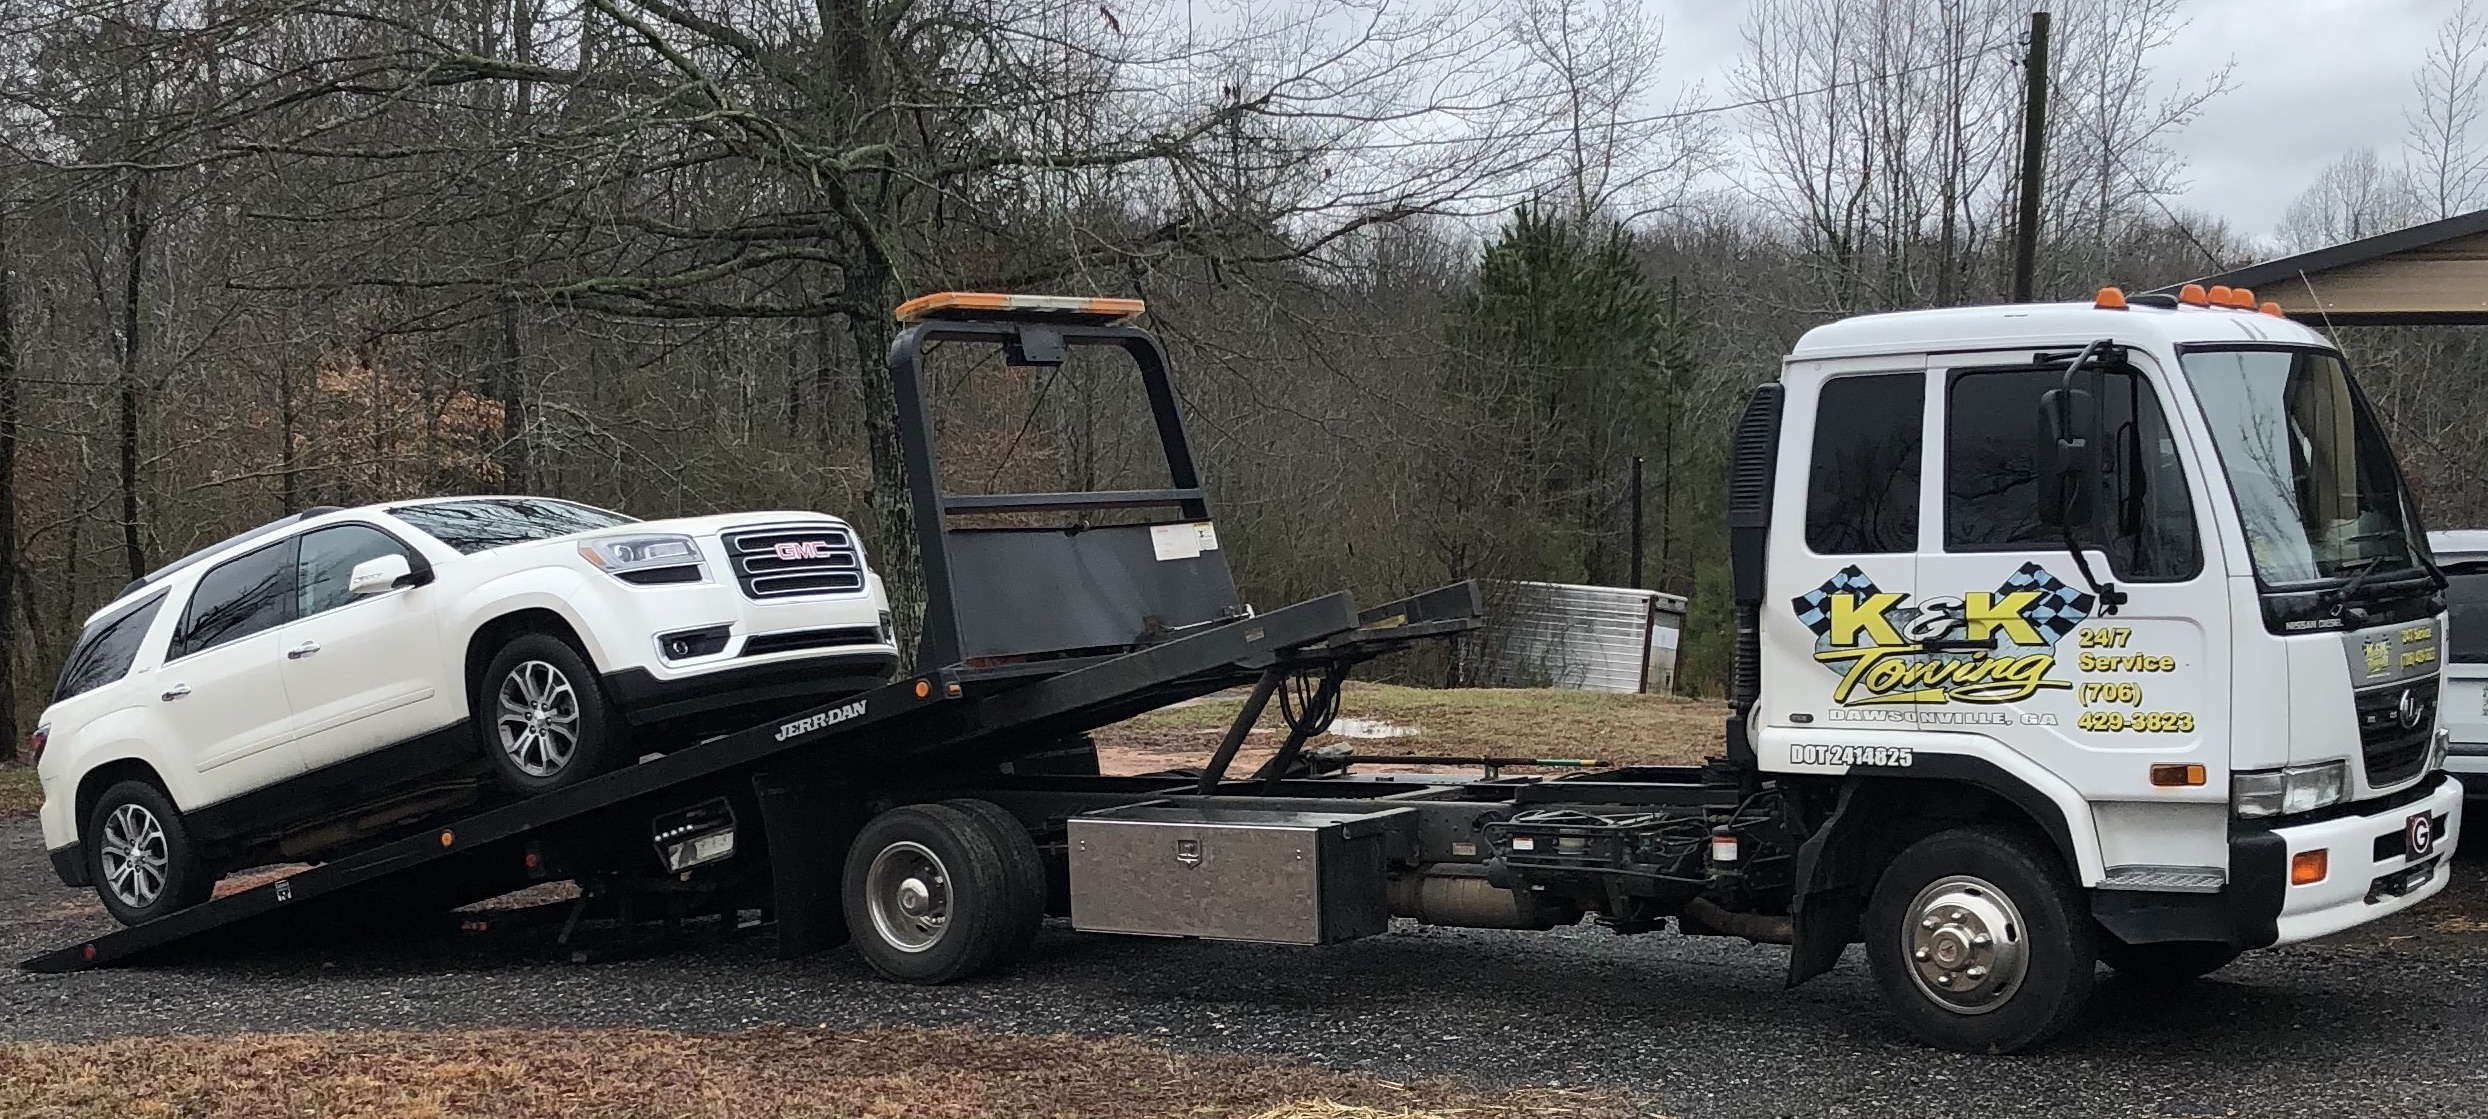 white GMC suv being loaded onto K&K Towing tow truck in Dawsonville, GA